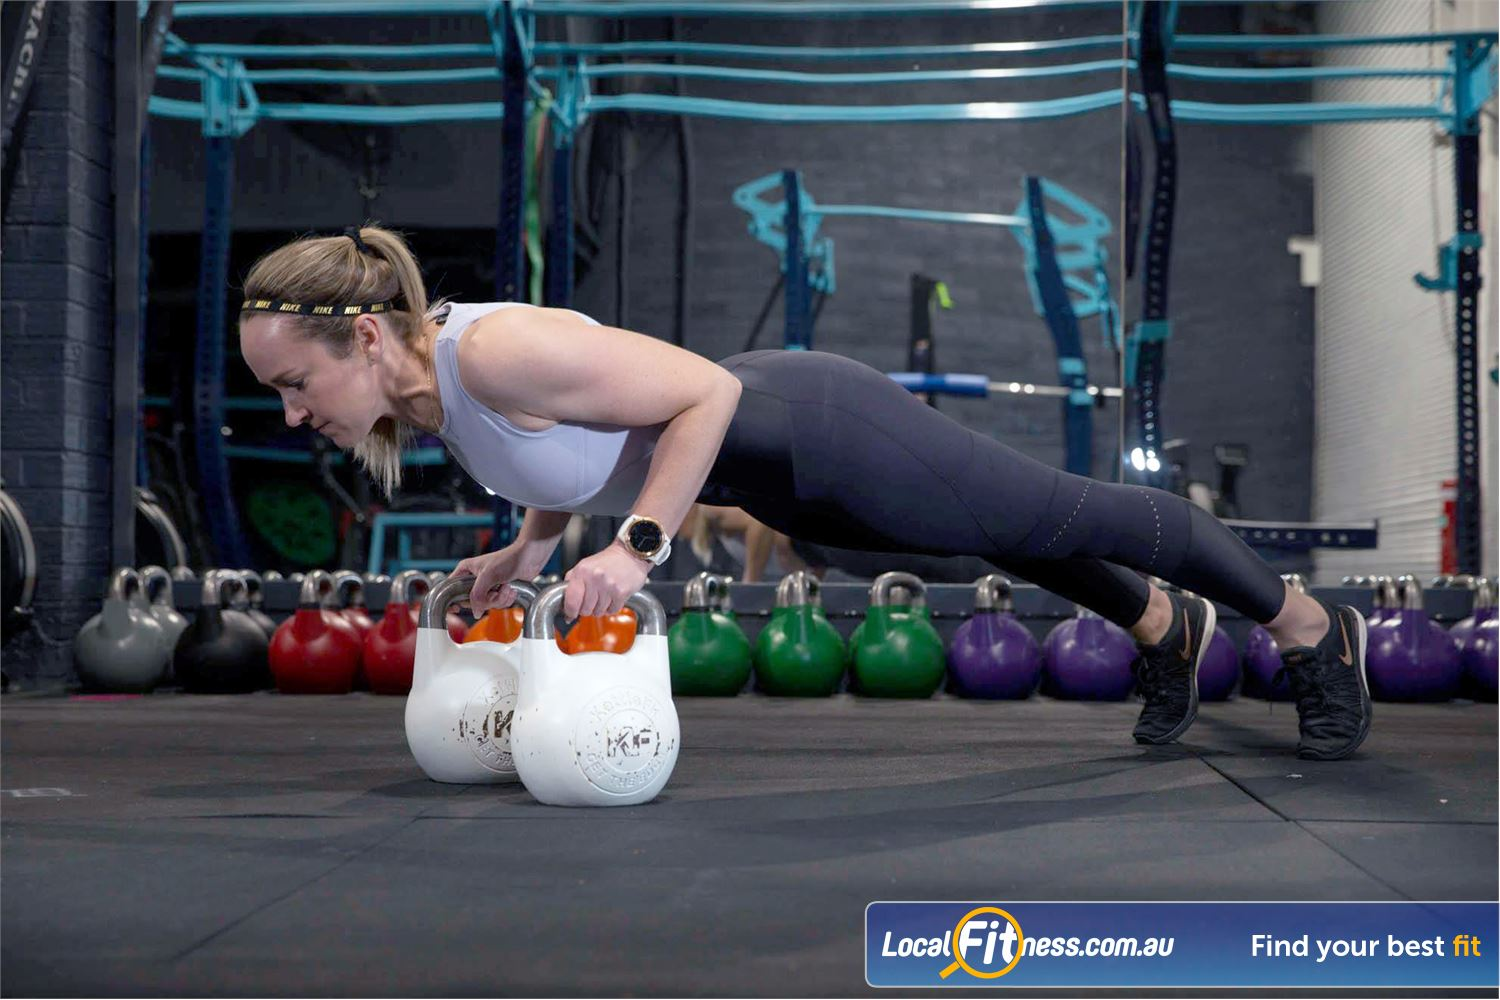 KettleFit Ascot Vale Travancore KettleFit classes works both your aerobic fitness and strength simultaneously.